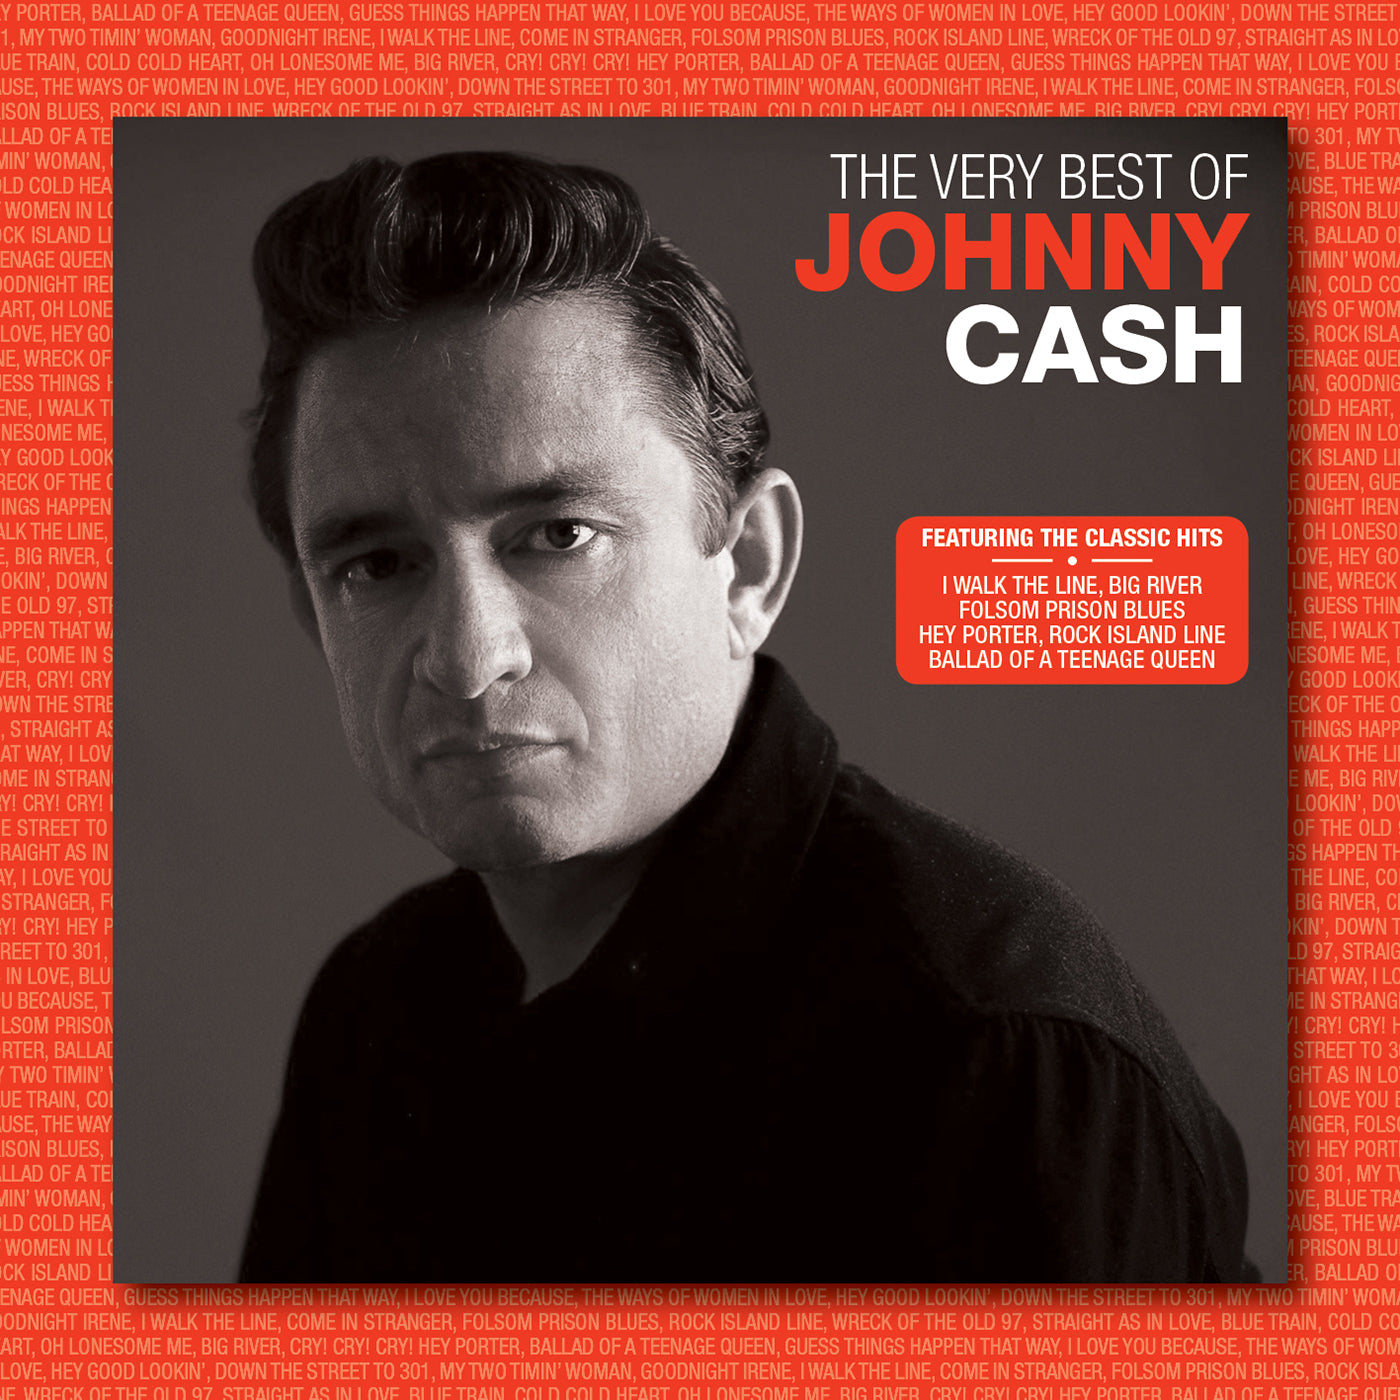 FANFARE161 - JOHNNY CASH - THE VERY BEST